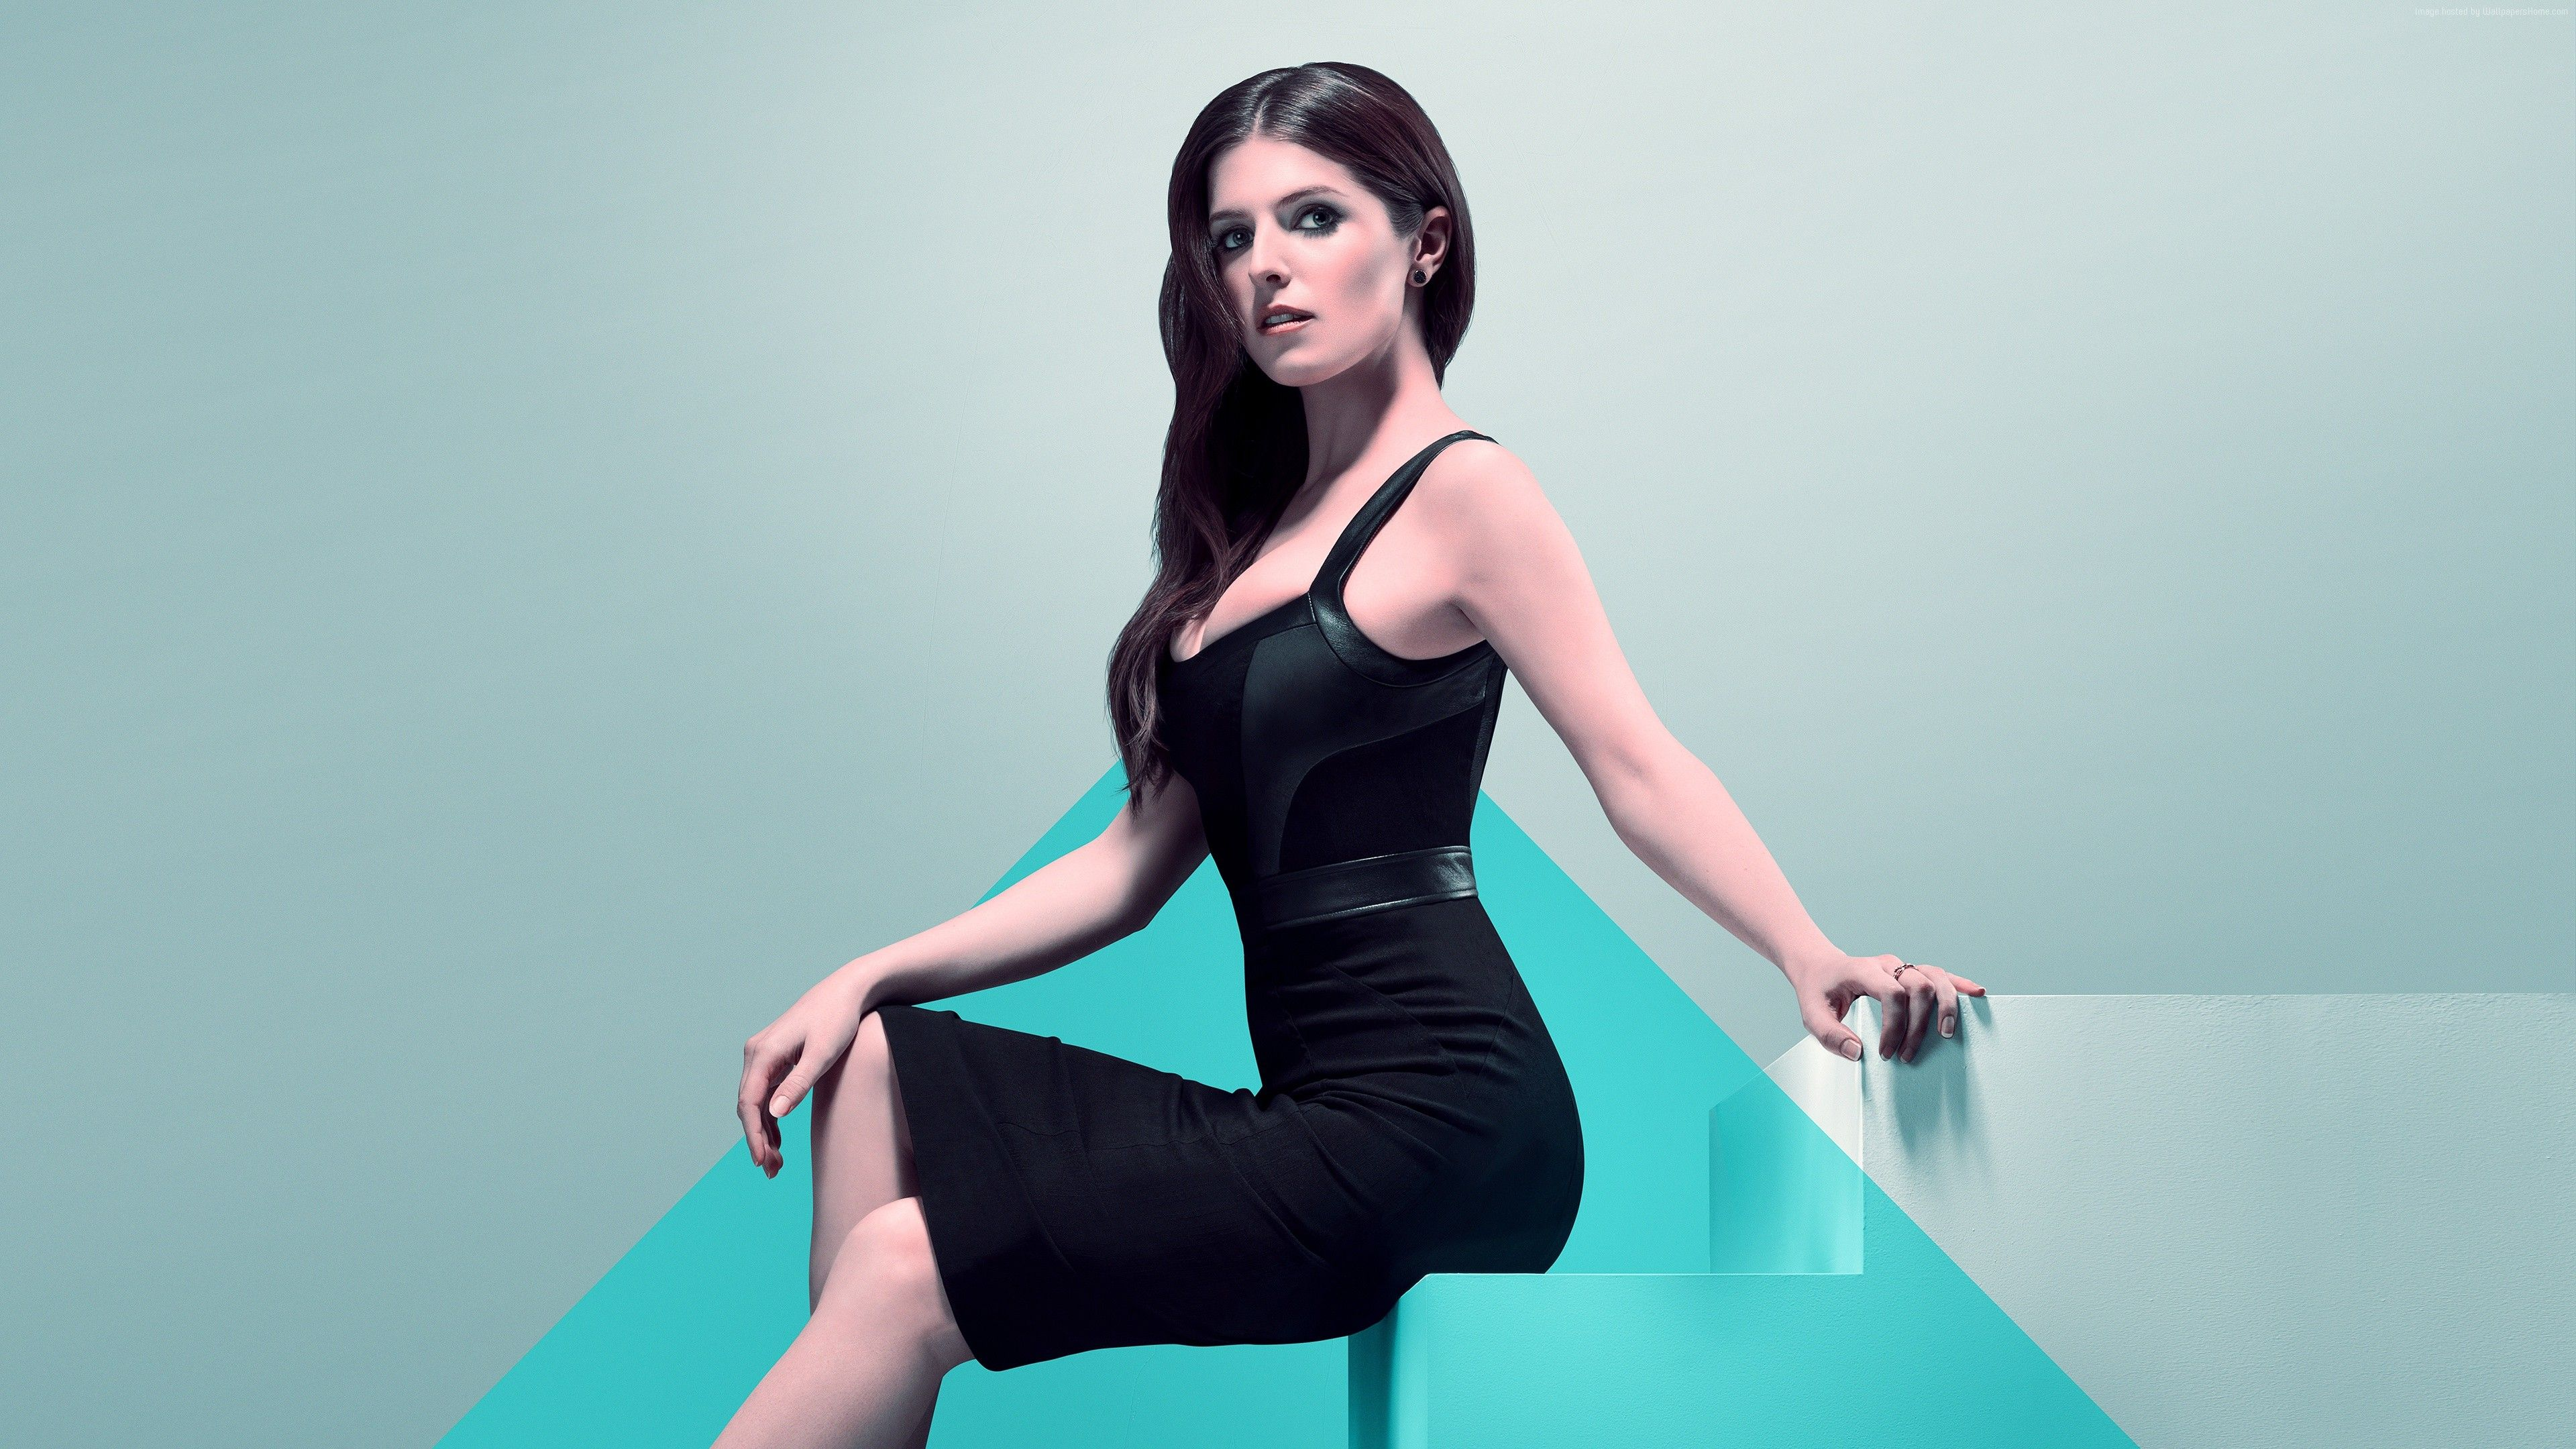 anna kendrick black dress wallpaper 65698